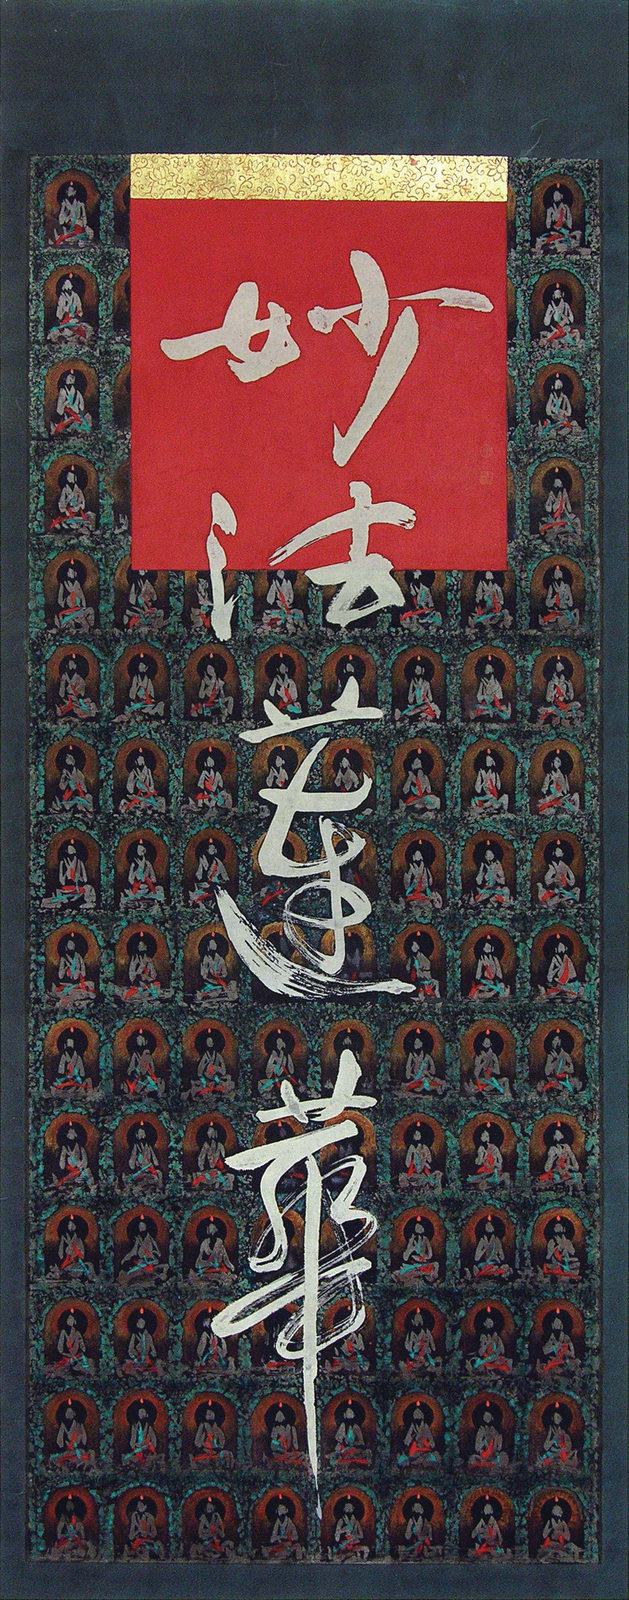 Kwok Hon Sum 郭漢深, Dharma (The Law) of Lotus 妙法蓮華 , 1993